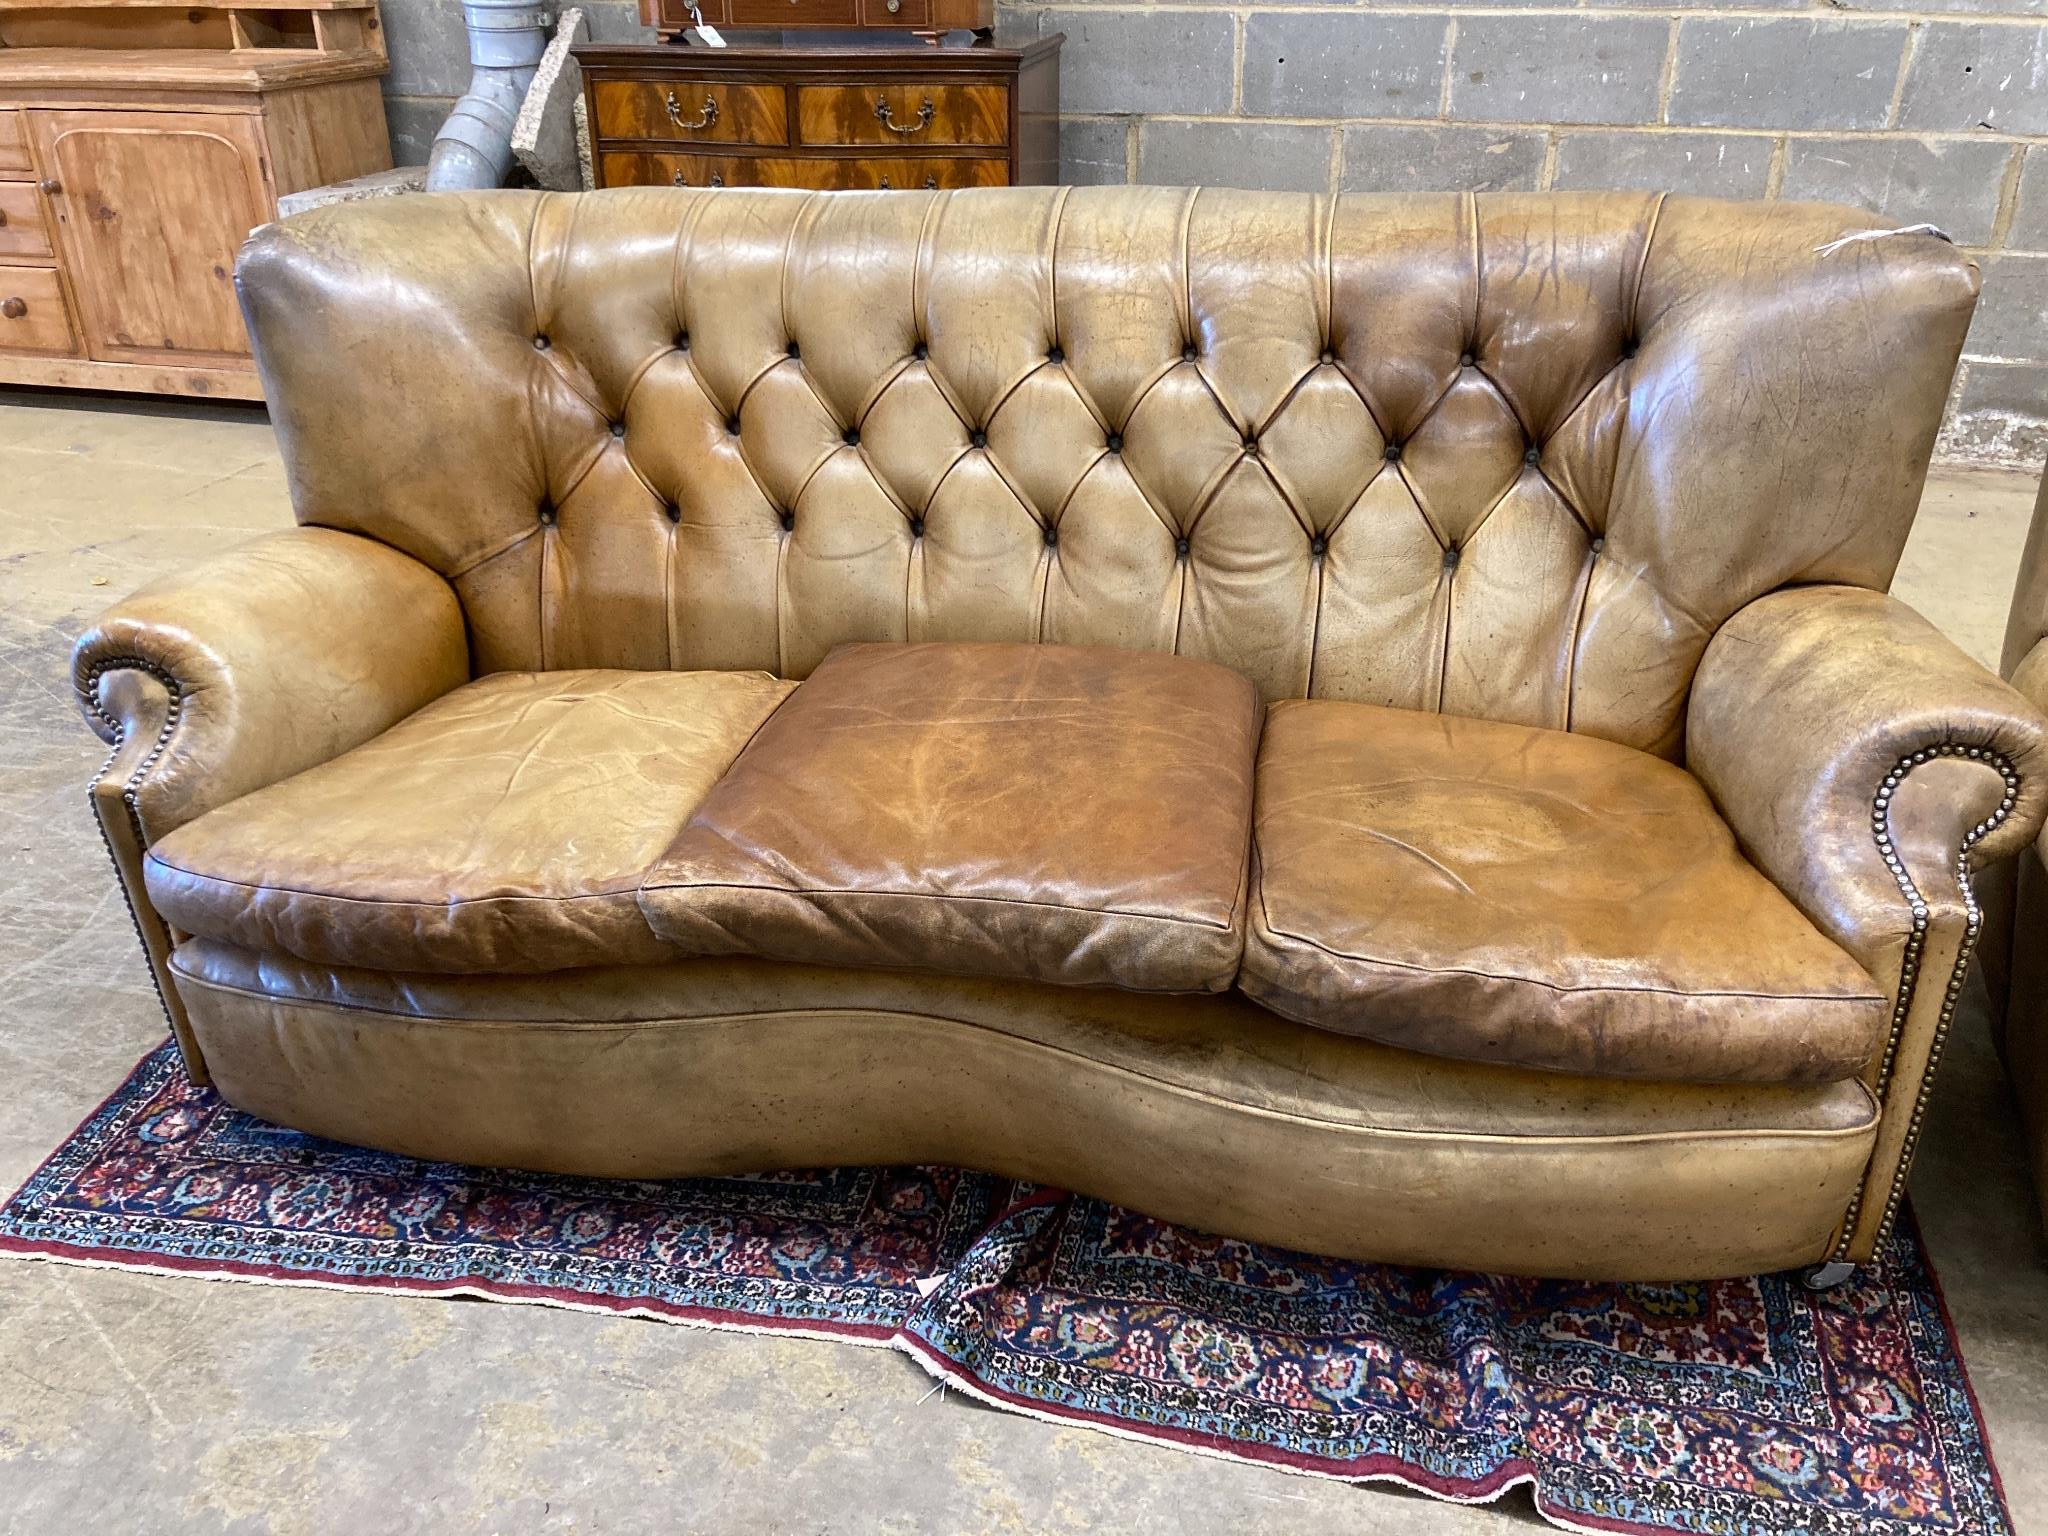 A three-seater Chesterfield leather settee, length 180cm, depth 100cm, height 84cm and a matching - Image 2 of 3